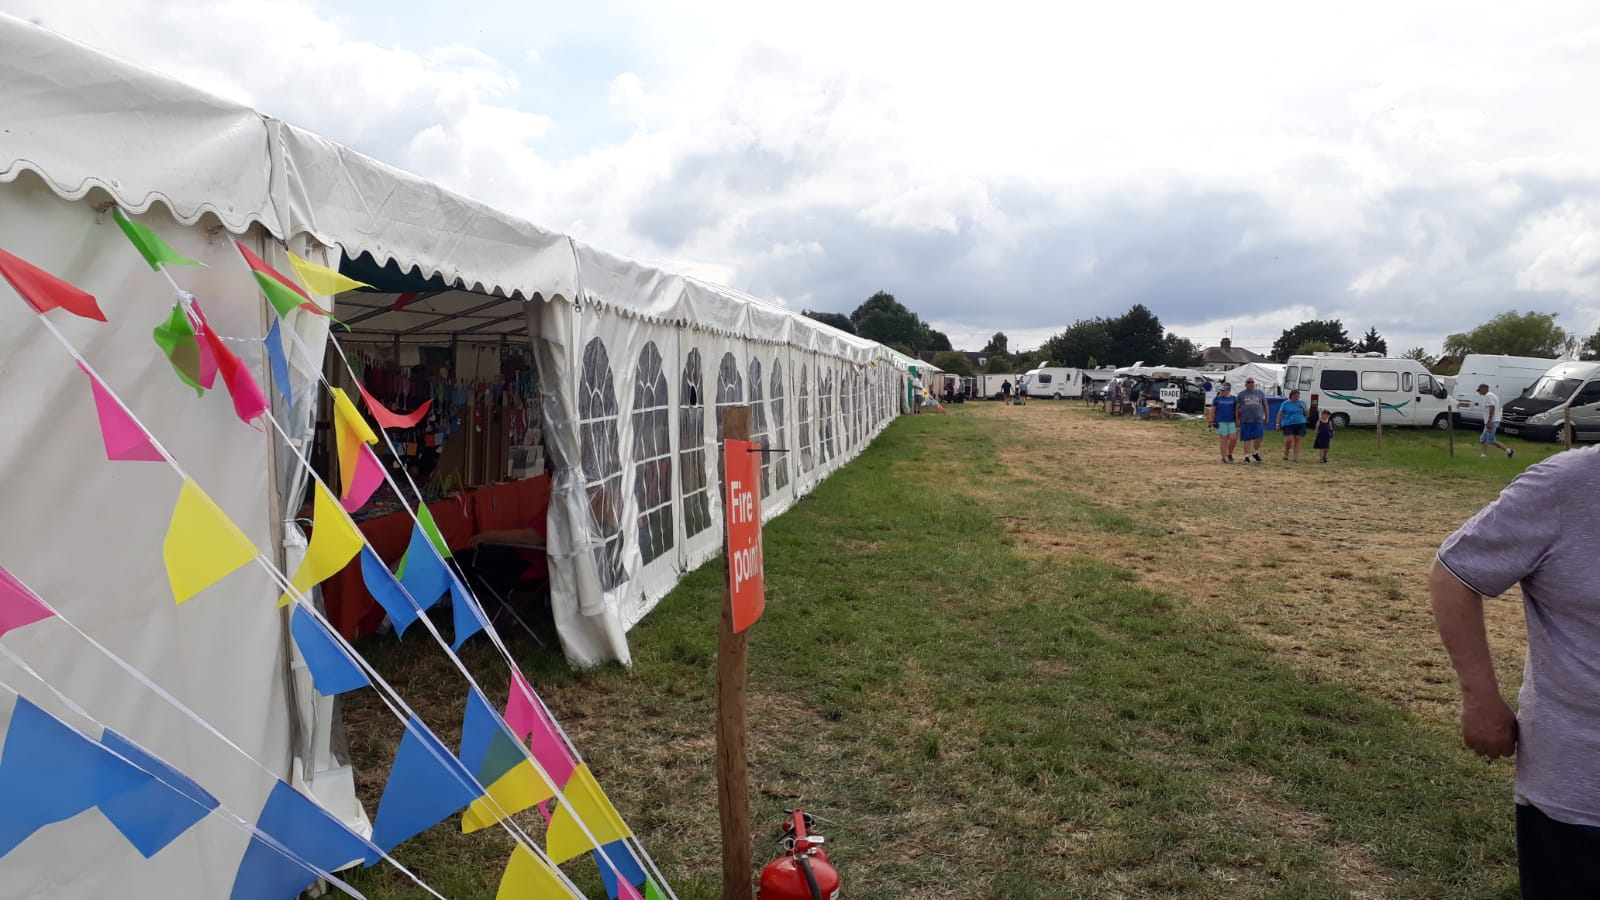 Marquee for Wiltshire Steam Rally